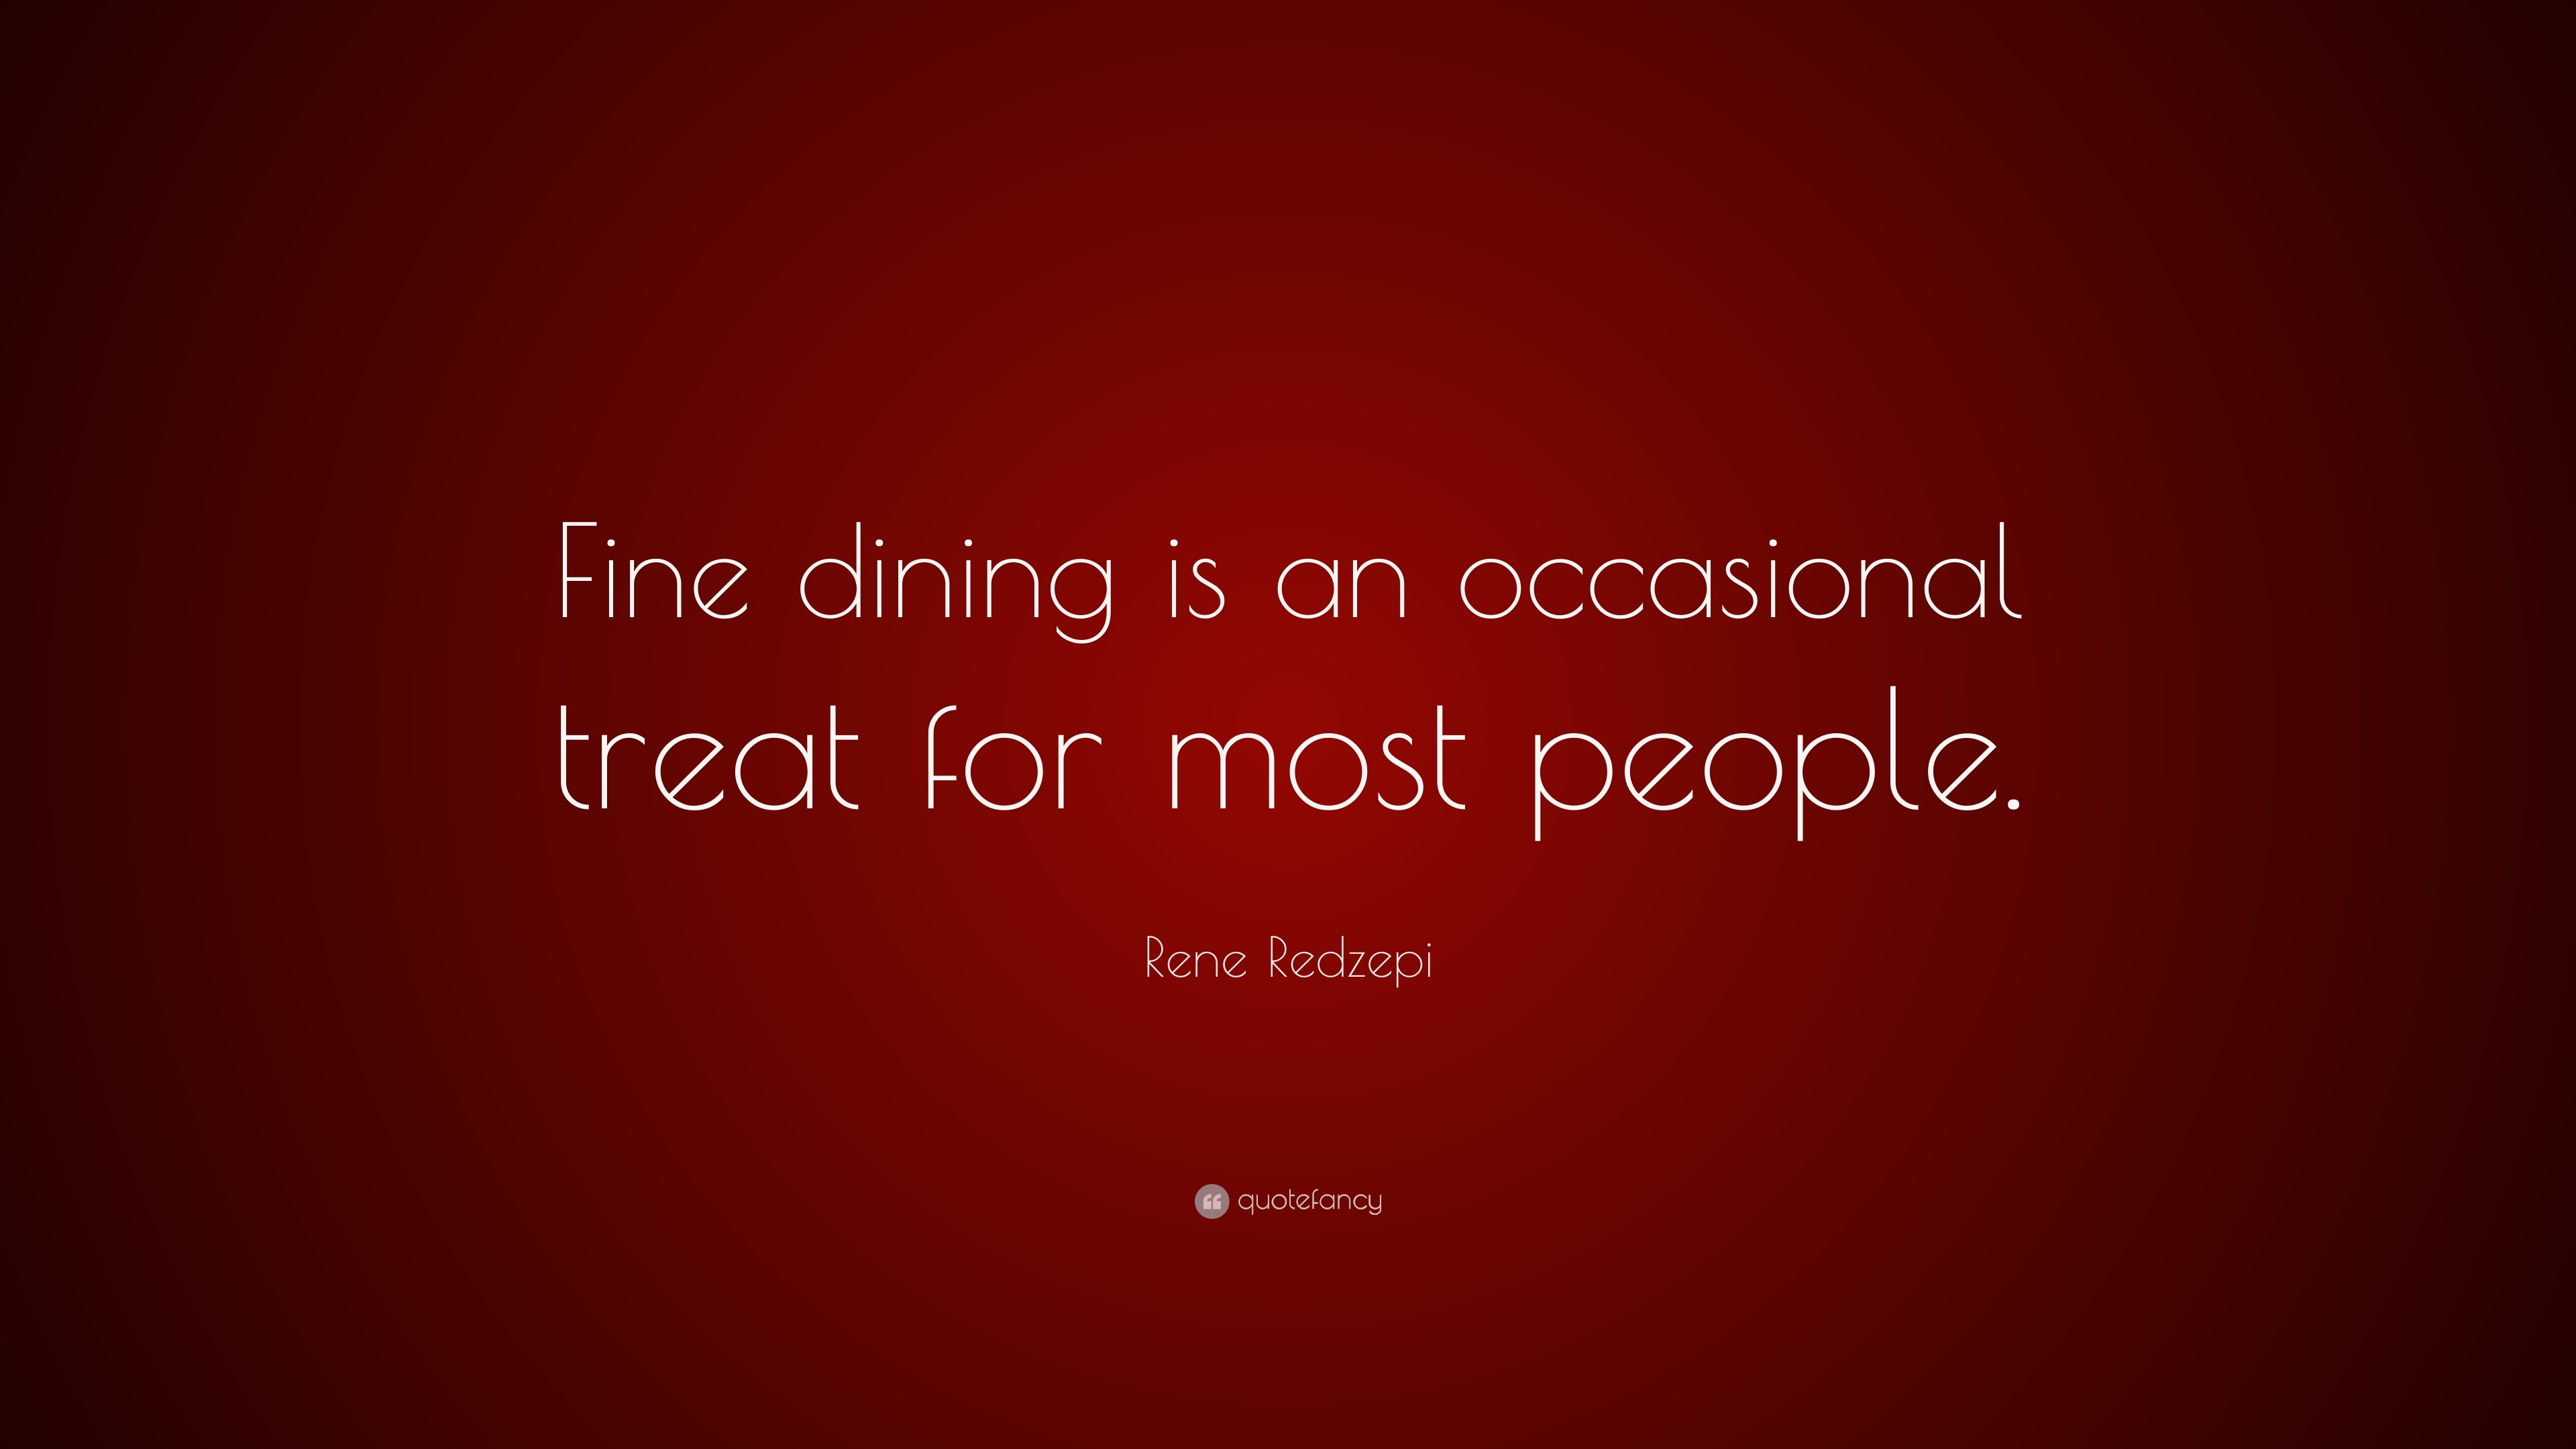 100 Fine Dining Wallpaper Dining Wallpaper Fine  : 1288169 Rene Redzepi Quote Fine dining is an occasional treat for most from viralfollowup.com size 3840 x 2160 jpeg 314kB